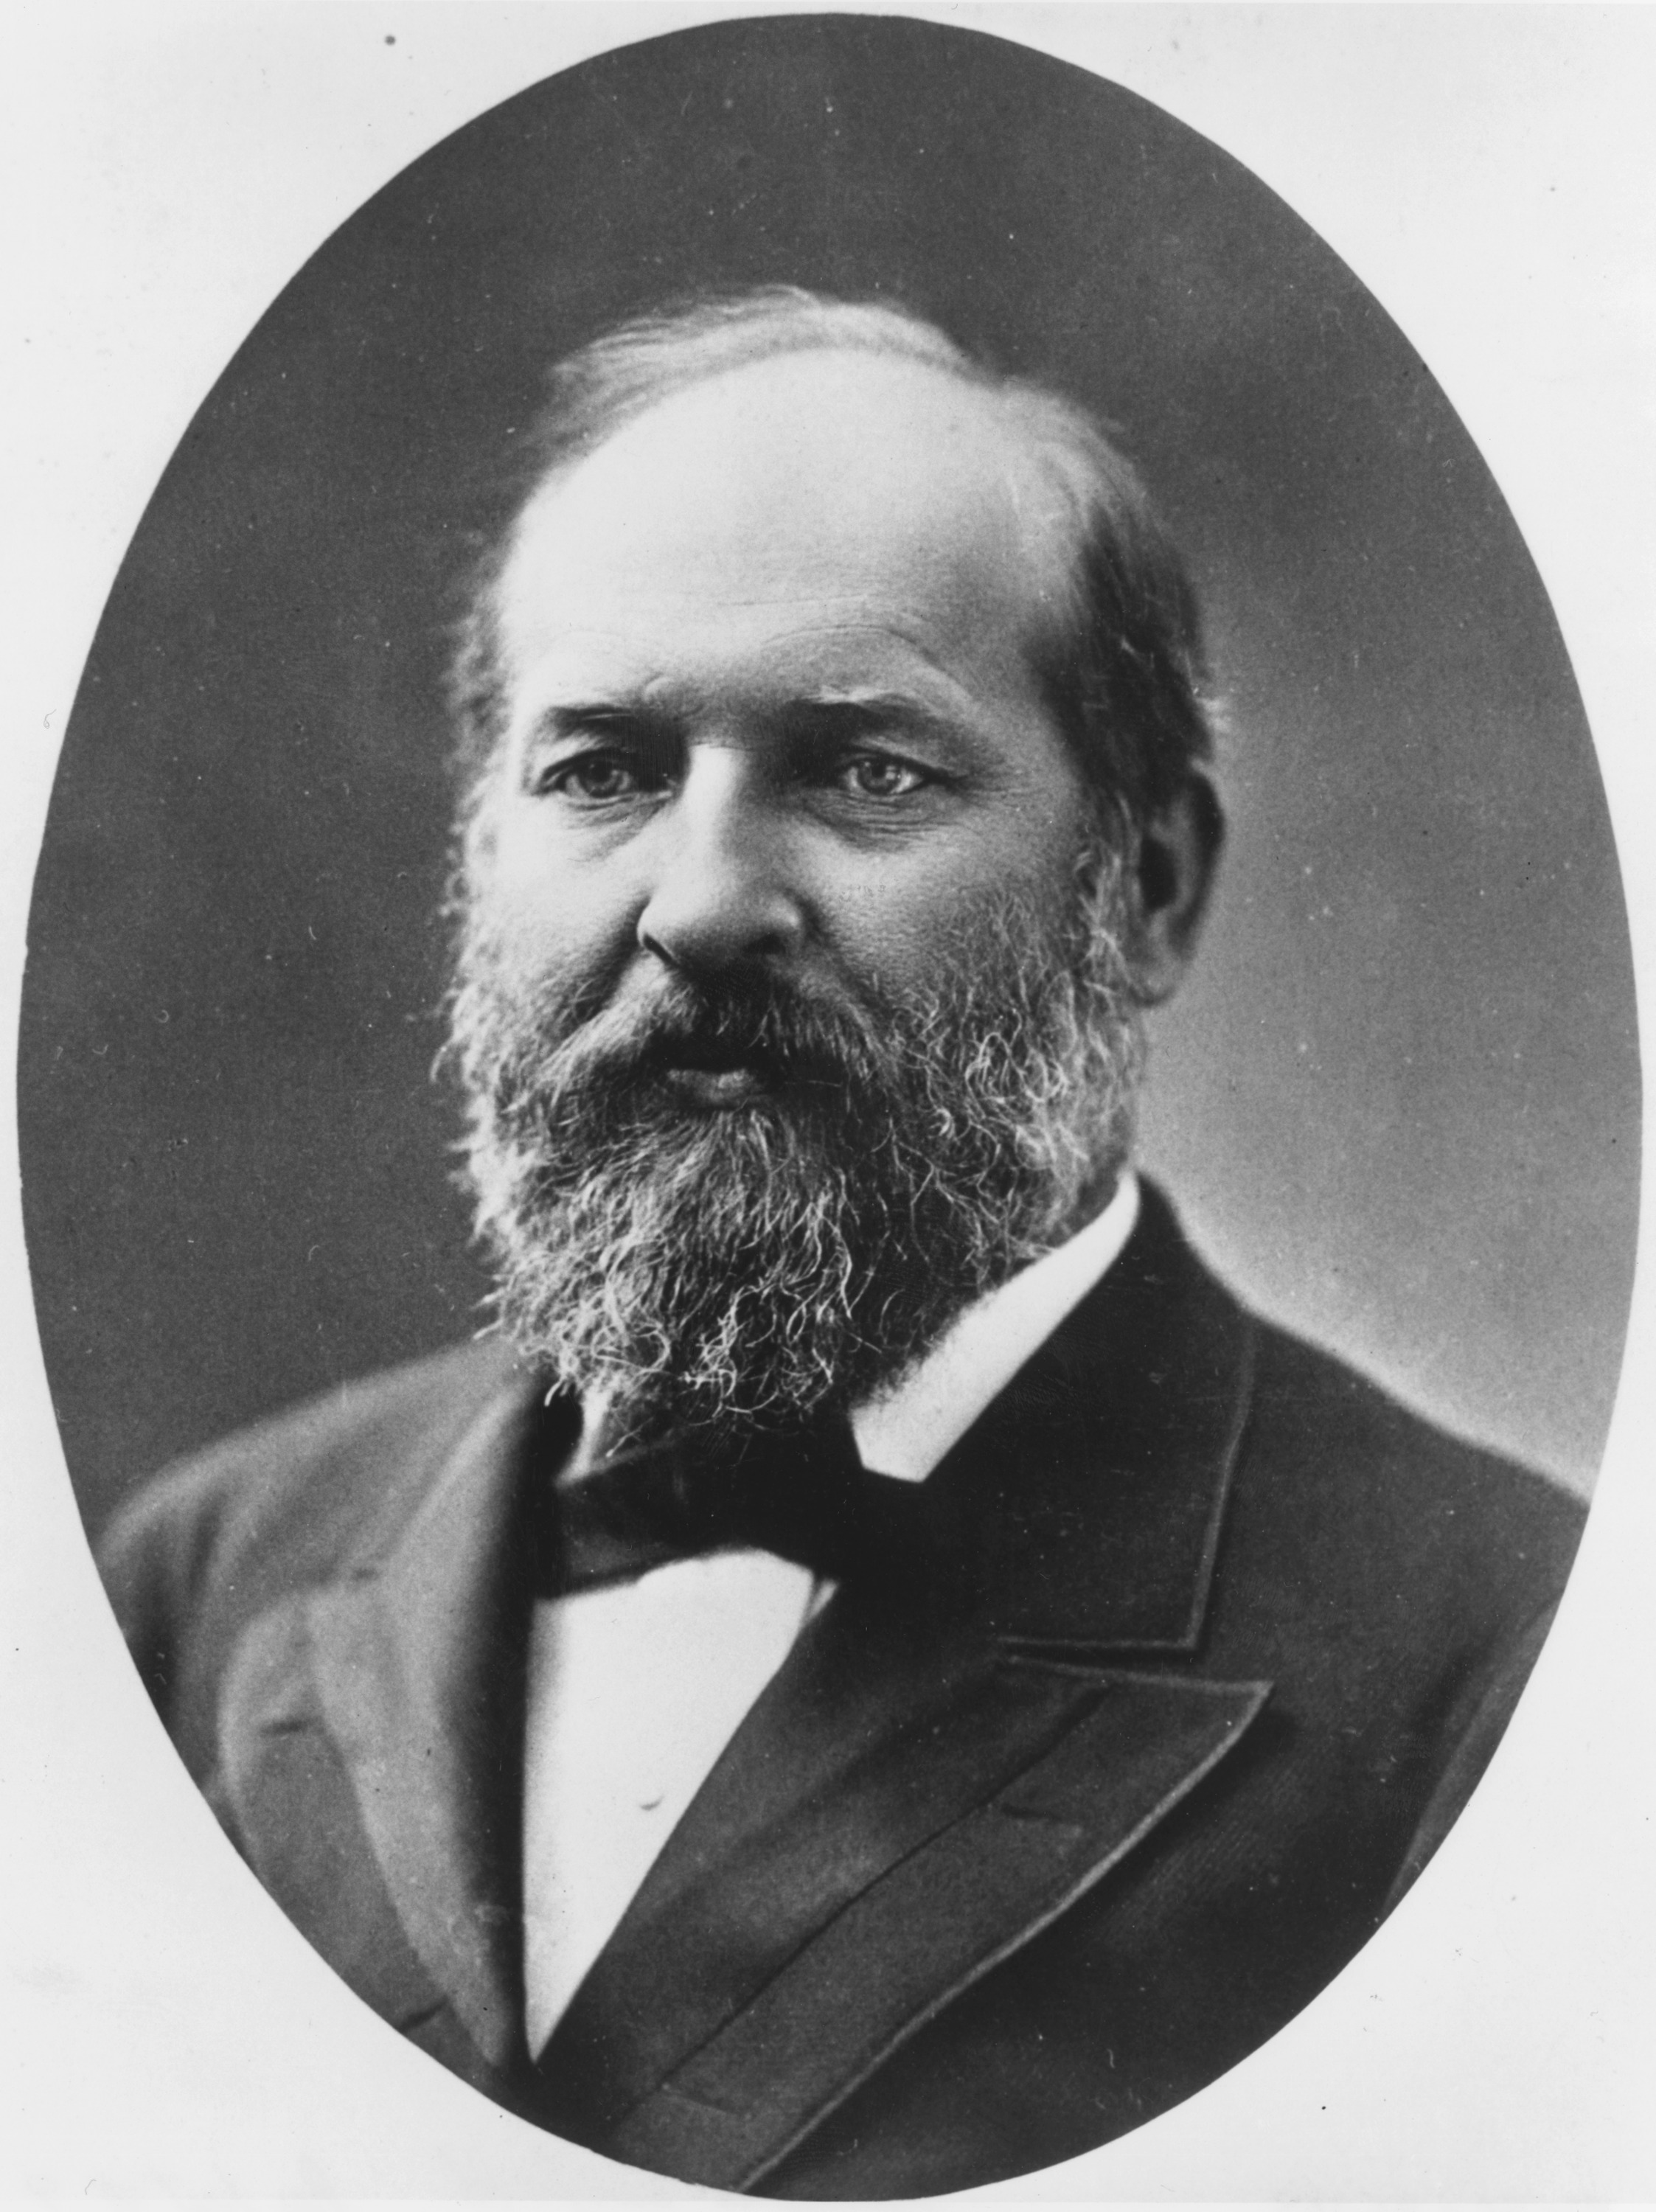 an introduction to the history of president james a garfield Introduction james g blaine served two terms as secretary of state he was first appointed by us president james a garfield, serving from march 7, 1881, until december 18, 1881, and was again appointed by us president benjamin harrison.